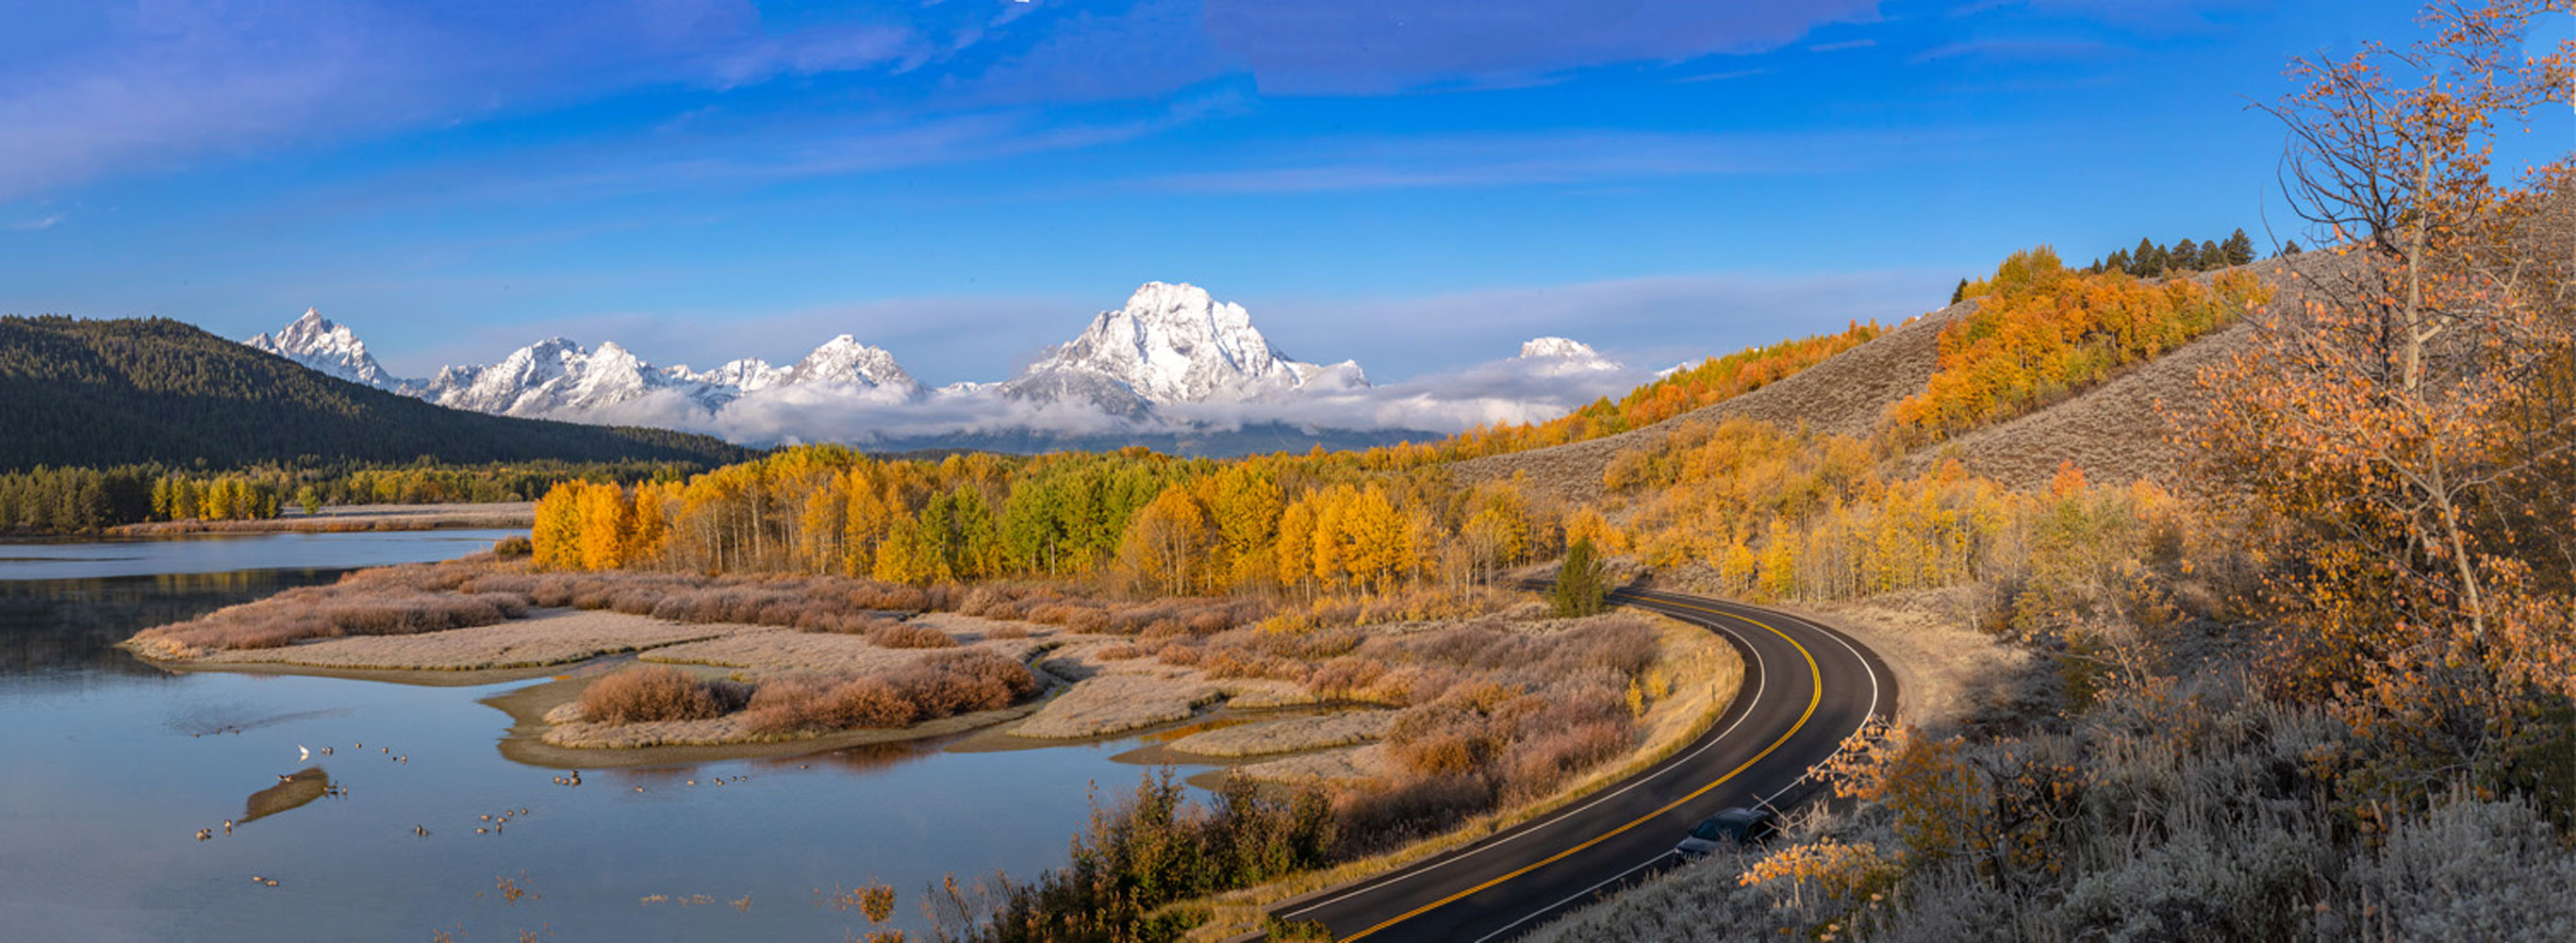 One of the most glorious spectacles in our national park system, autumn at Oxbow Bend.